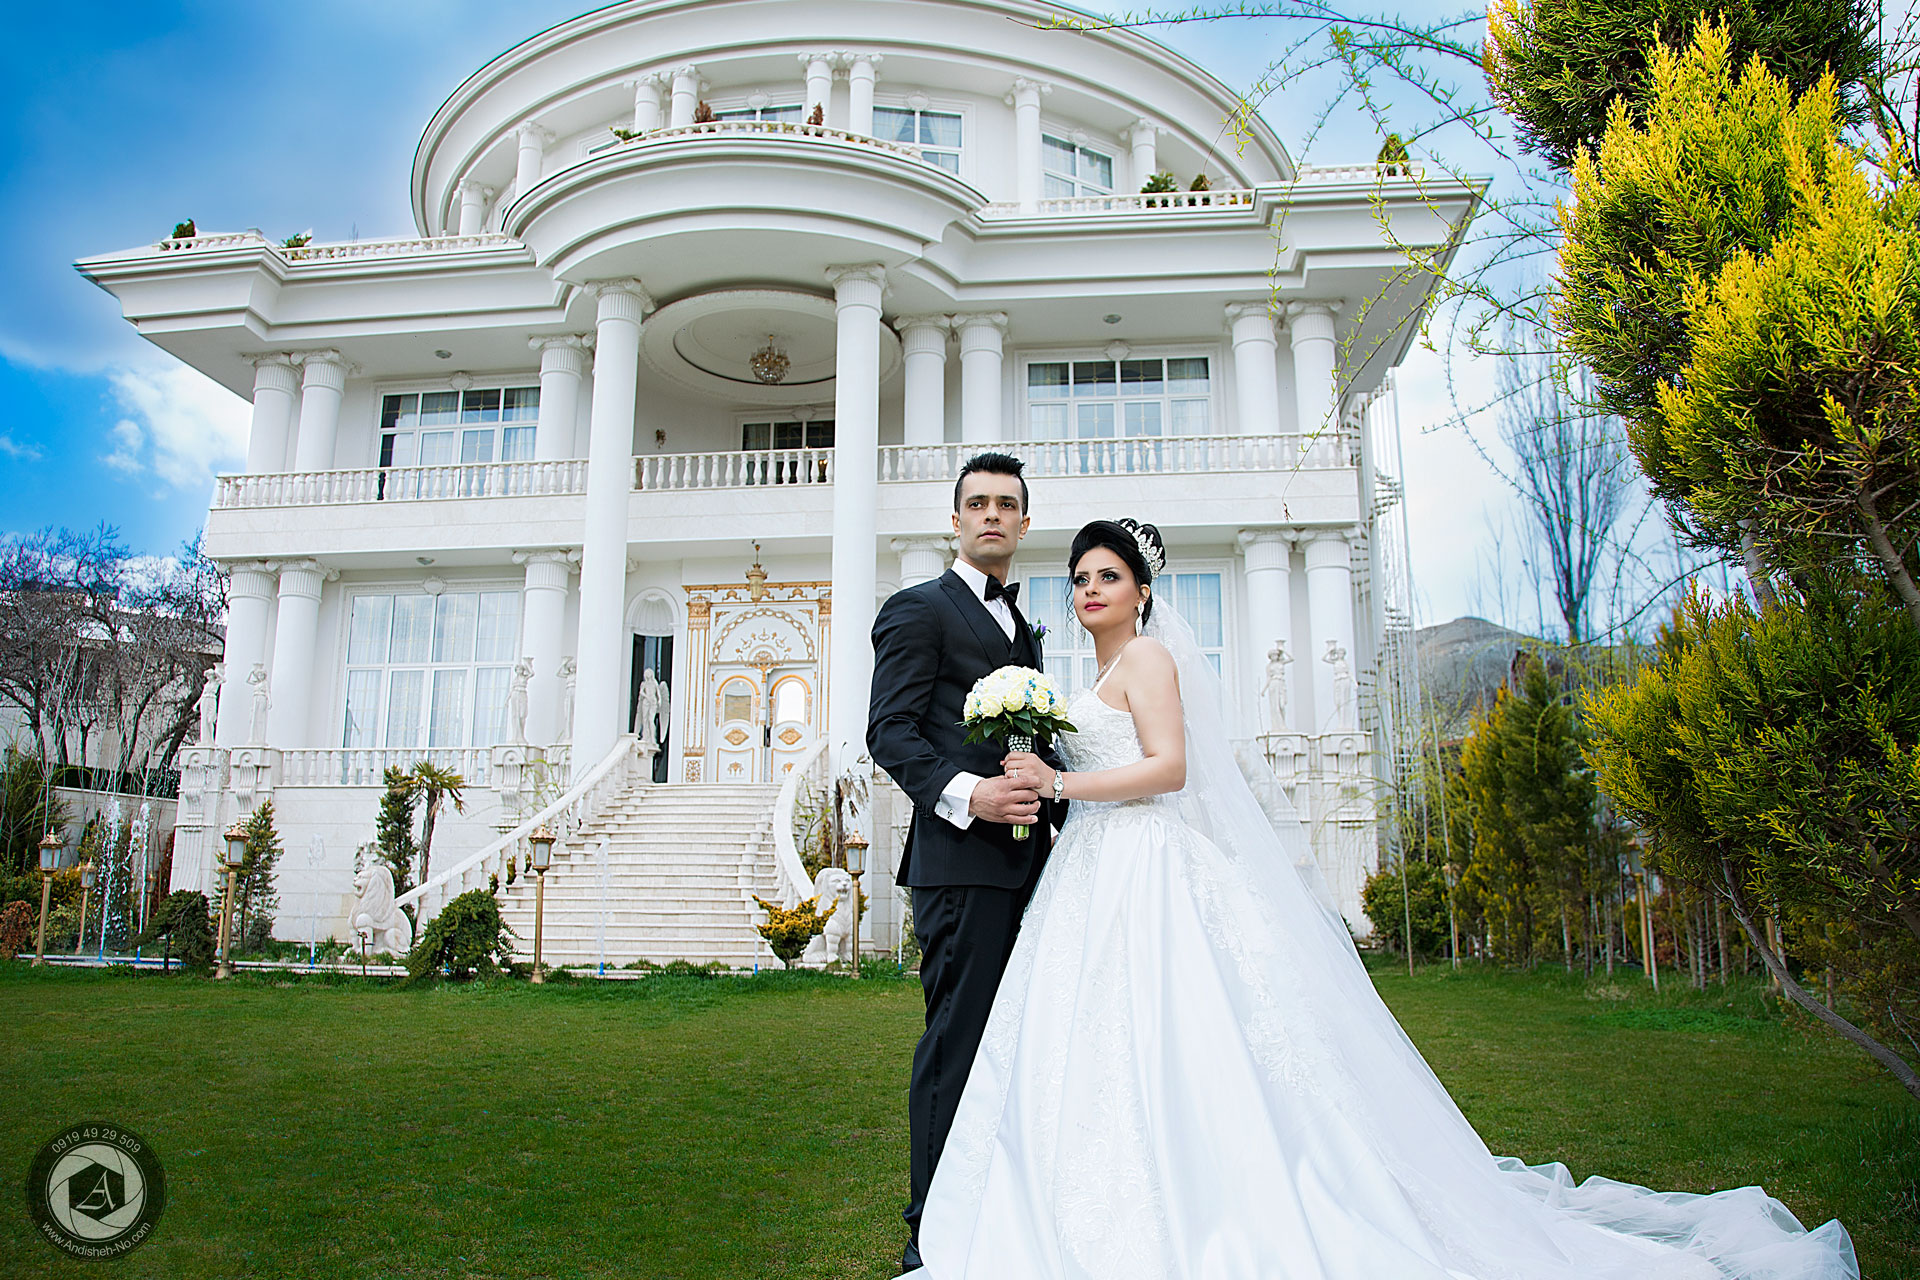 groom suit - Bridesmaid dresses - Bridal Bouquet - Wedding mansion - photography studio andisheh no - manager nima nasiri